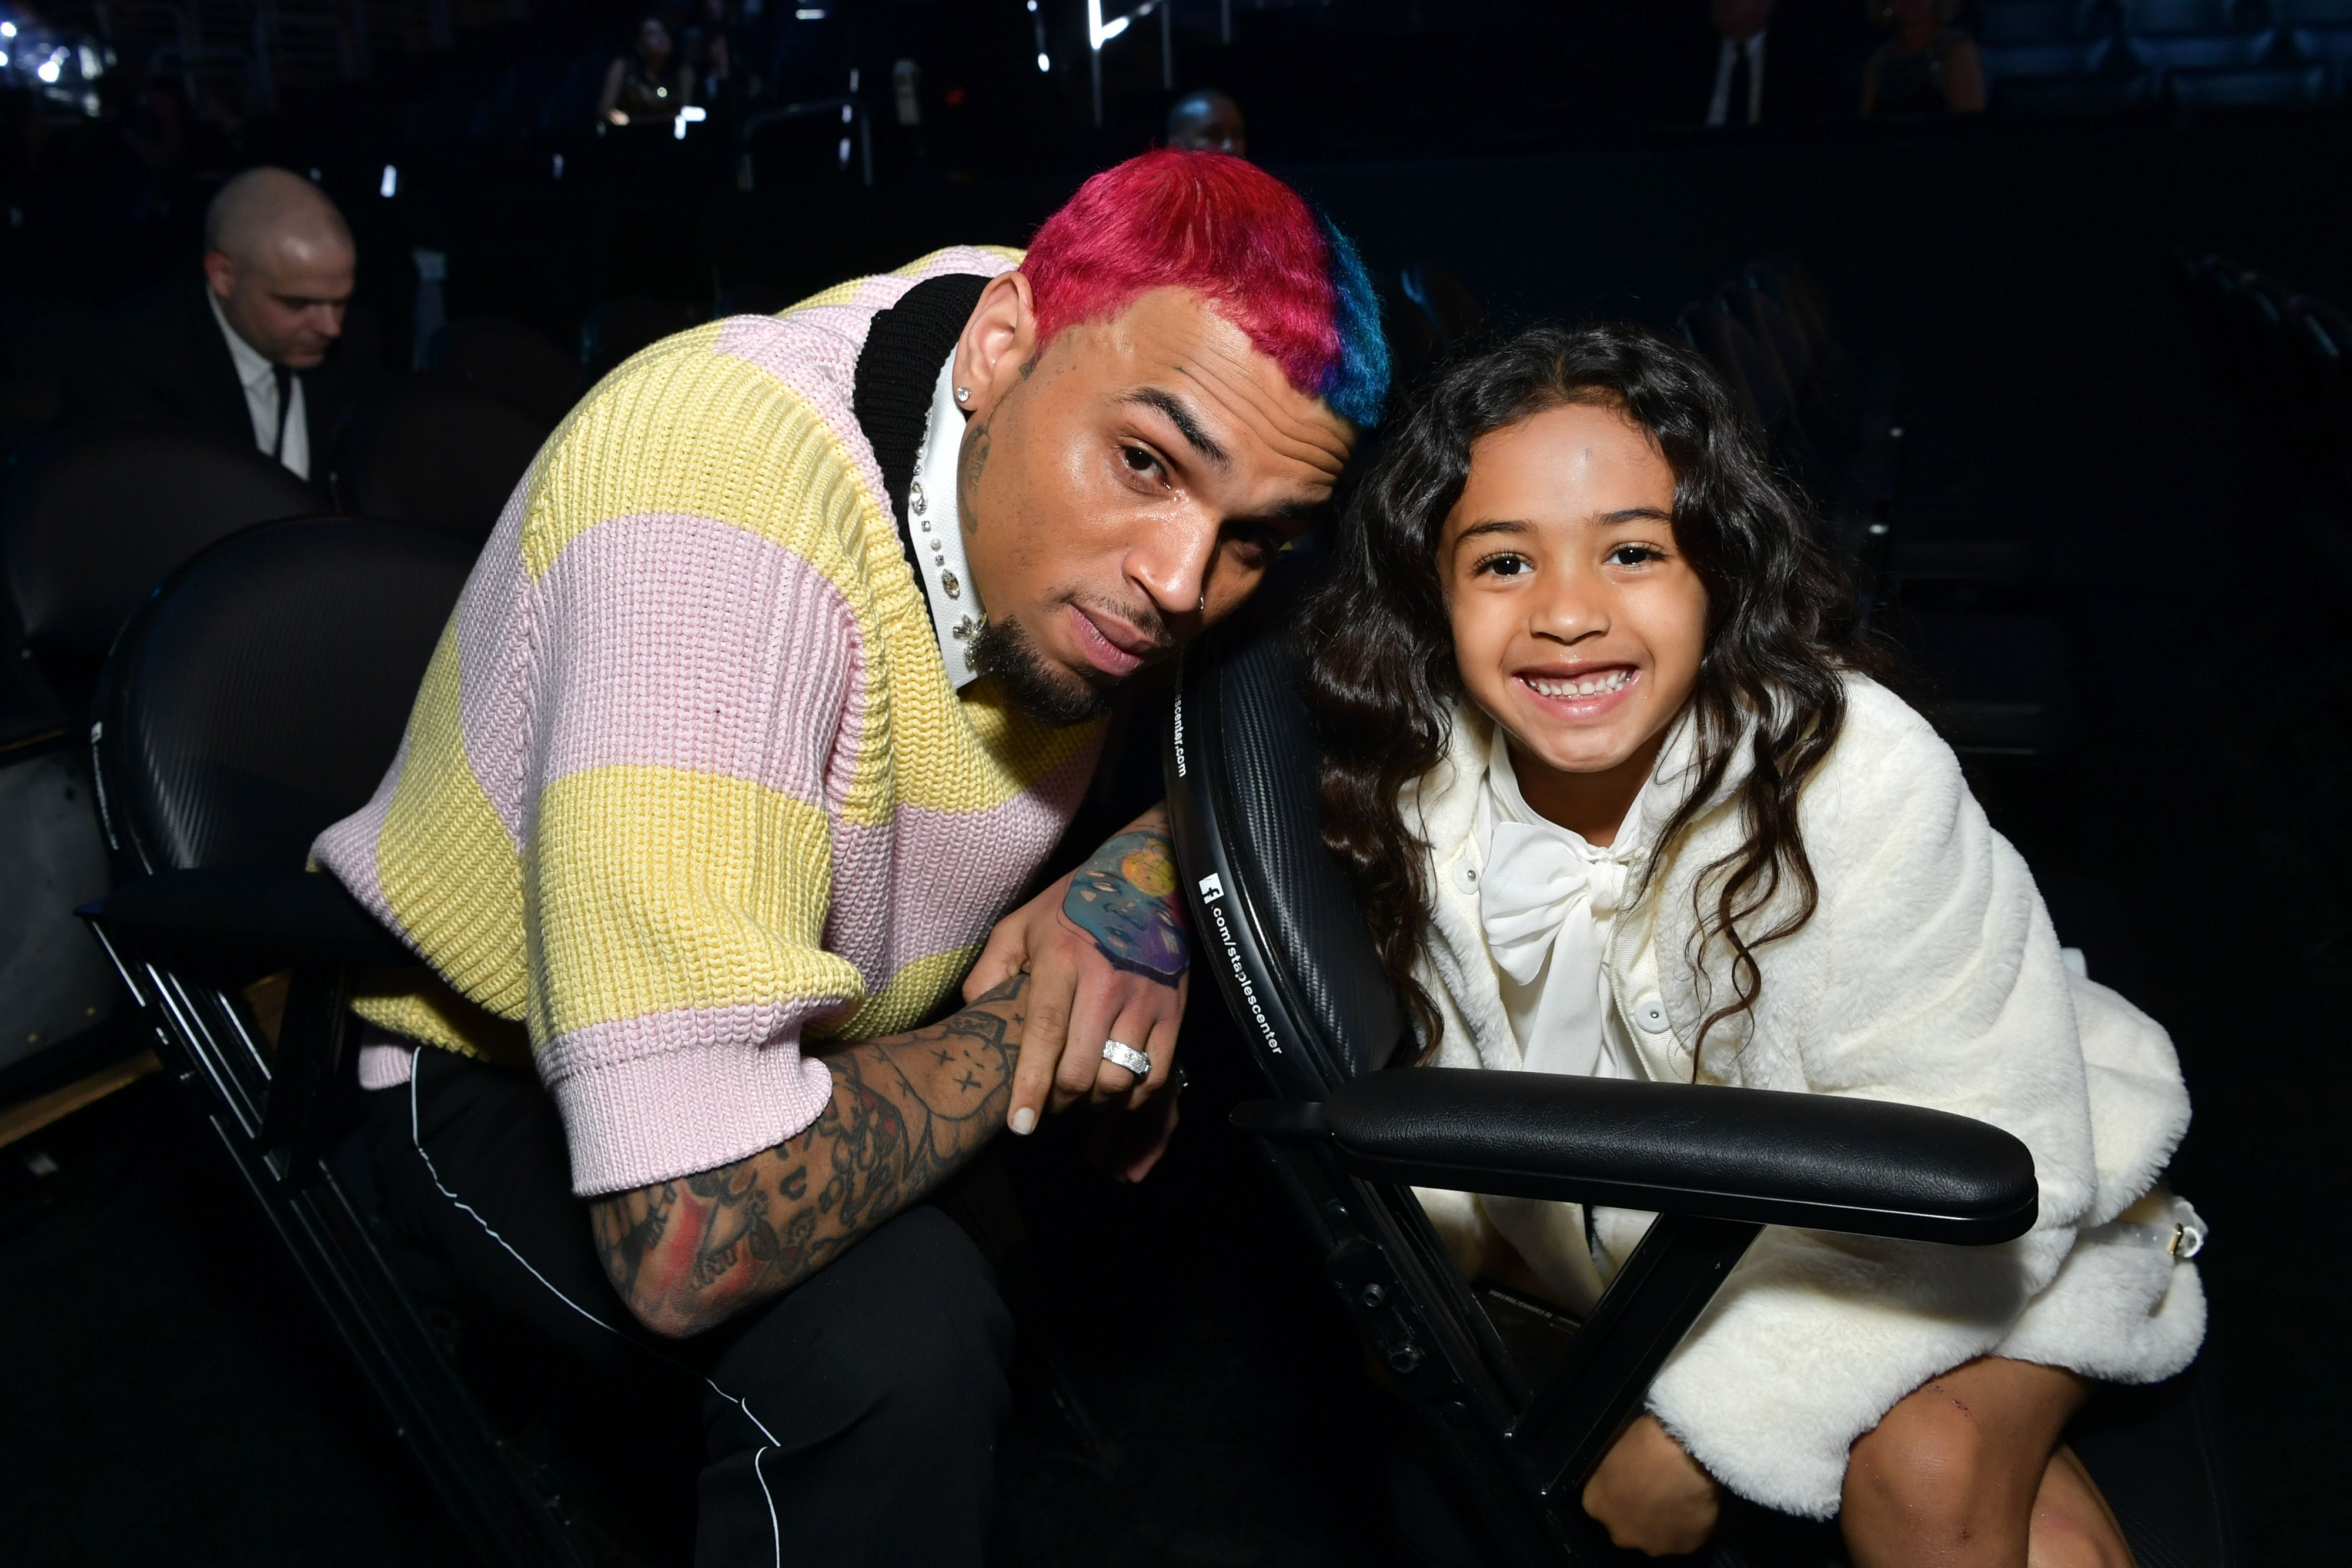 Chris Brown and Royalty Brown attend the 62nd Annual Grammy Awards at Staples Center on January 26, 2020 in Los Angeles, California. | Source: Getty Images